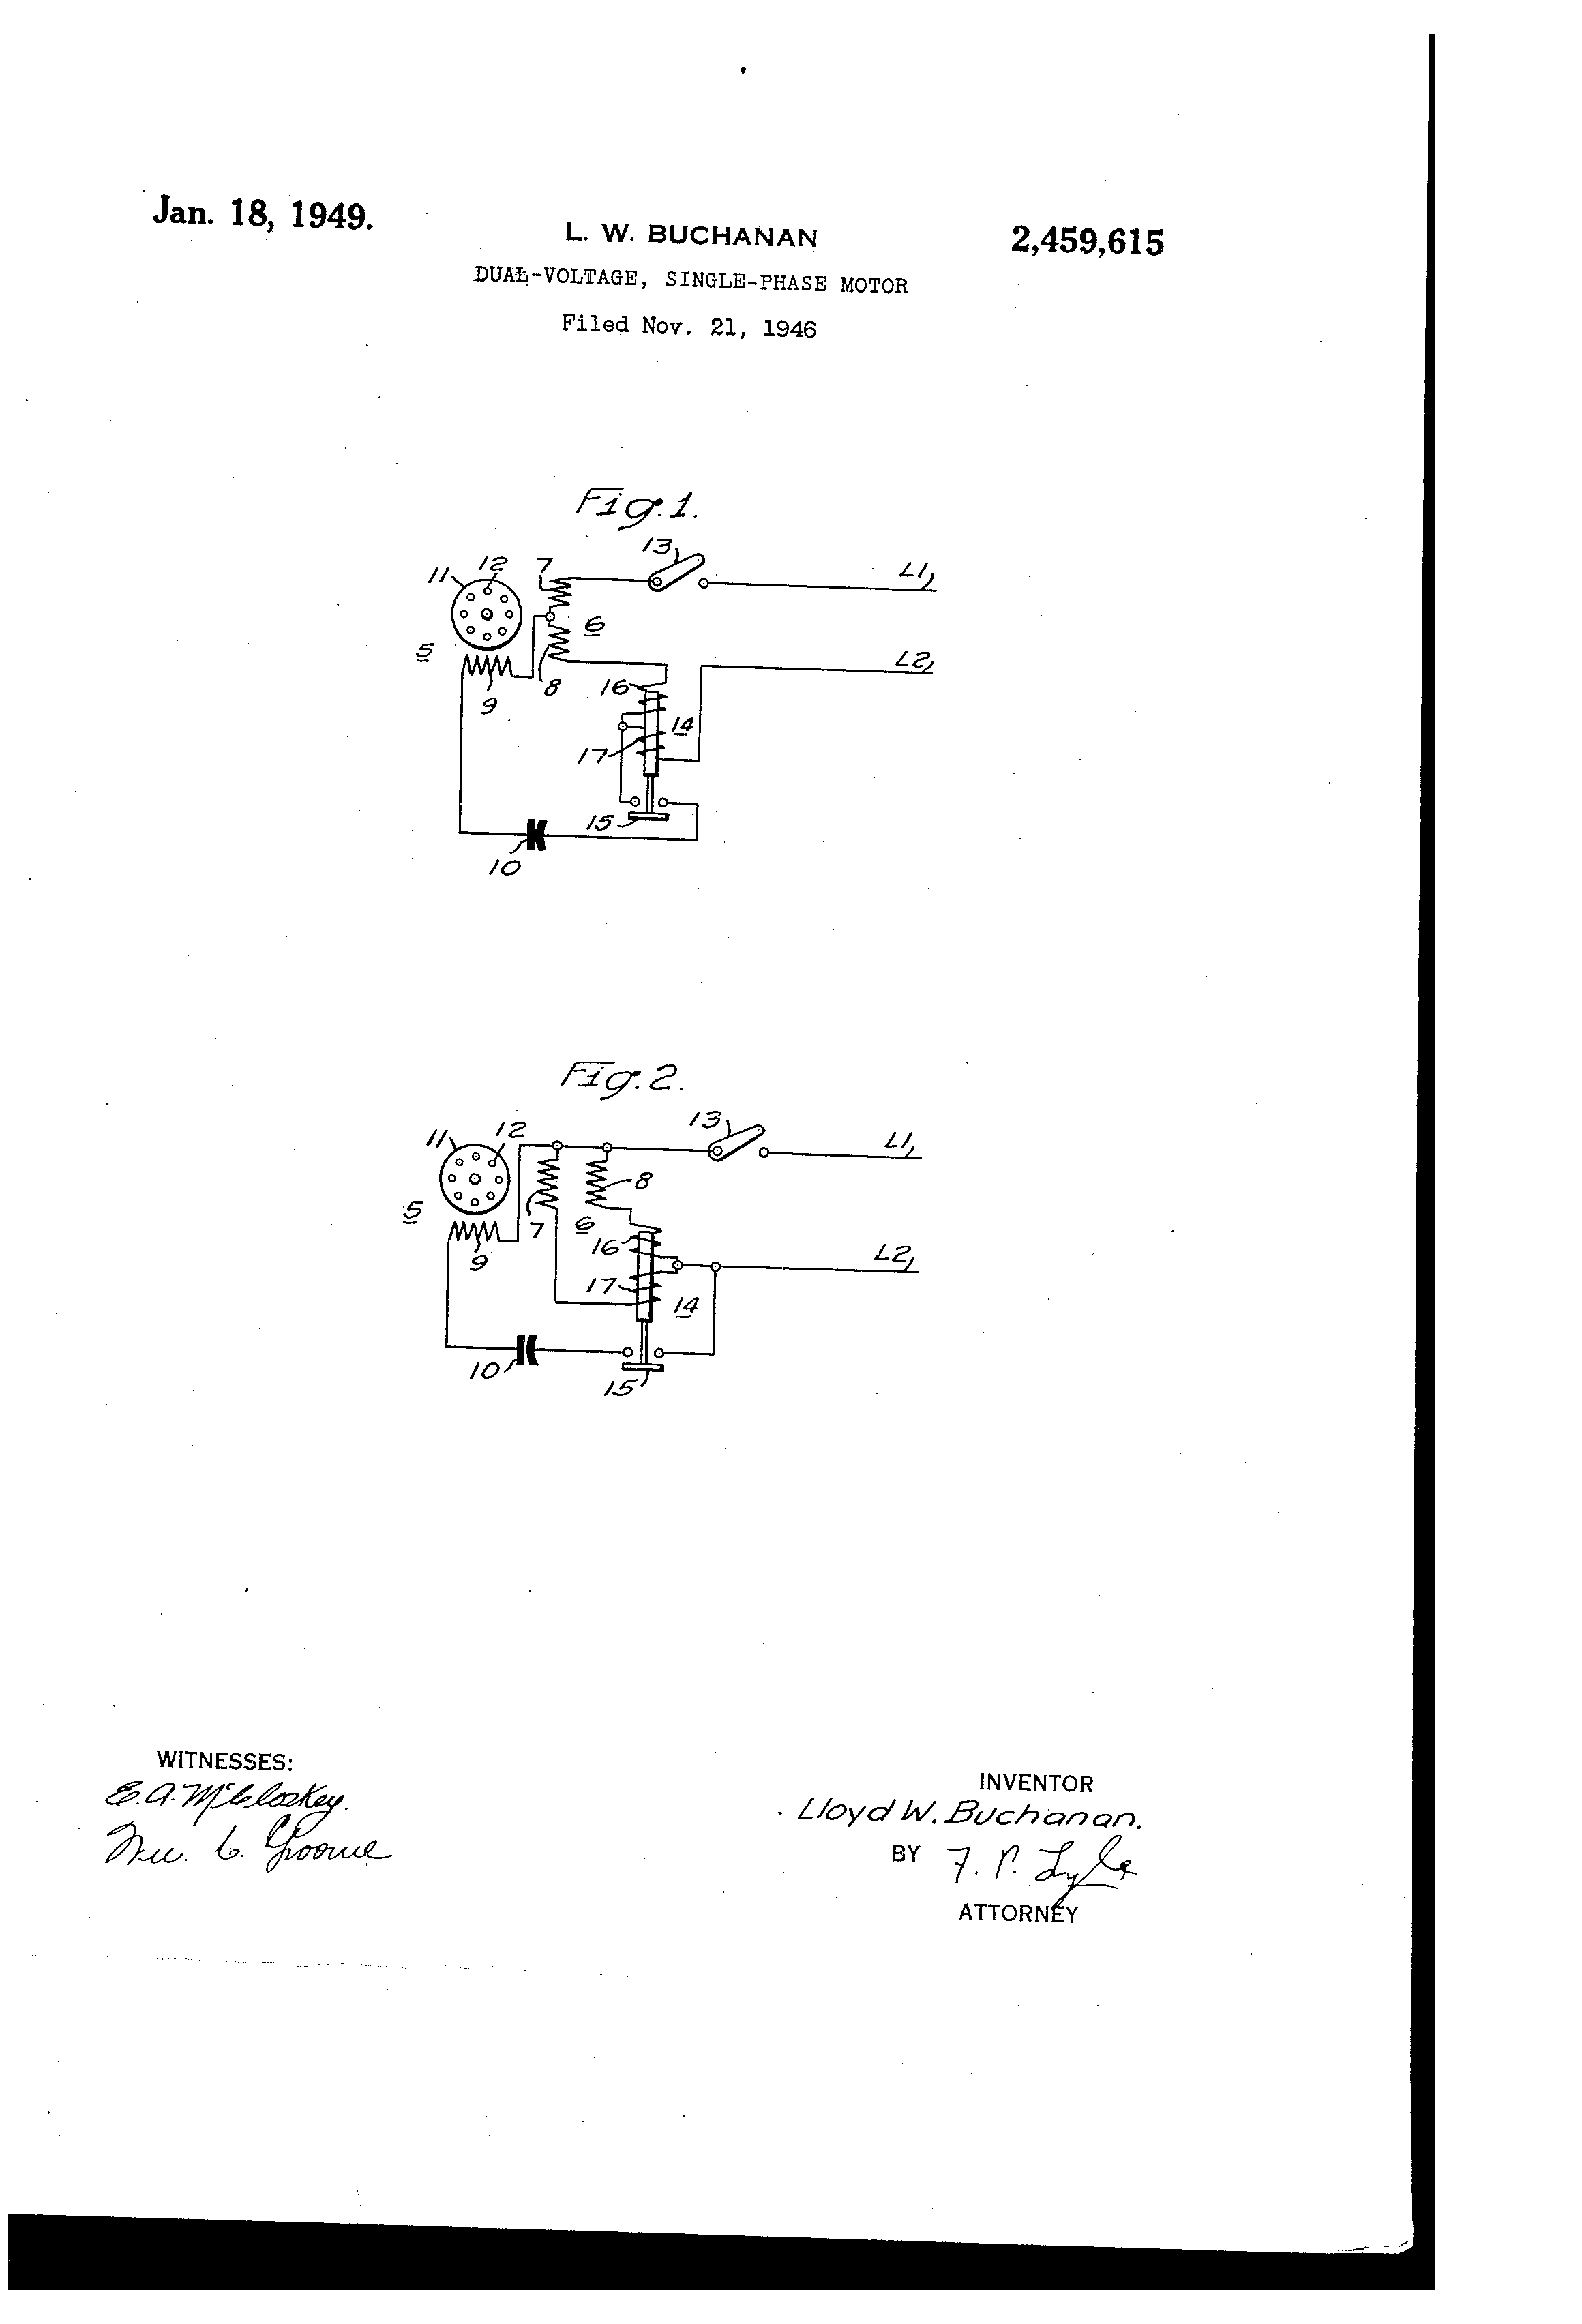 single phase dual voltage motor wiring diagram single patent us2459615 dual voltage single phase motor google patents on single phase dual voltage motor wiring